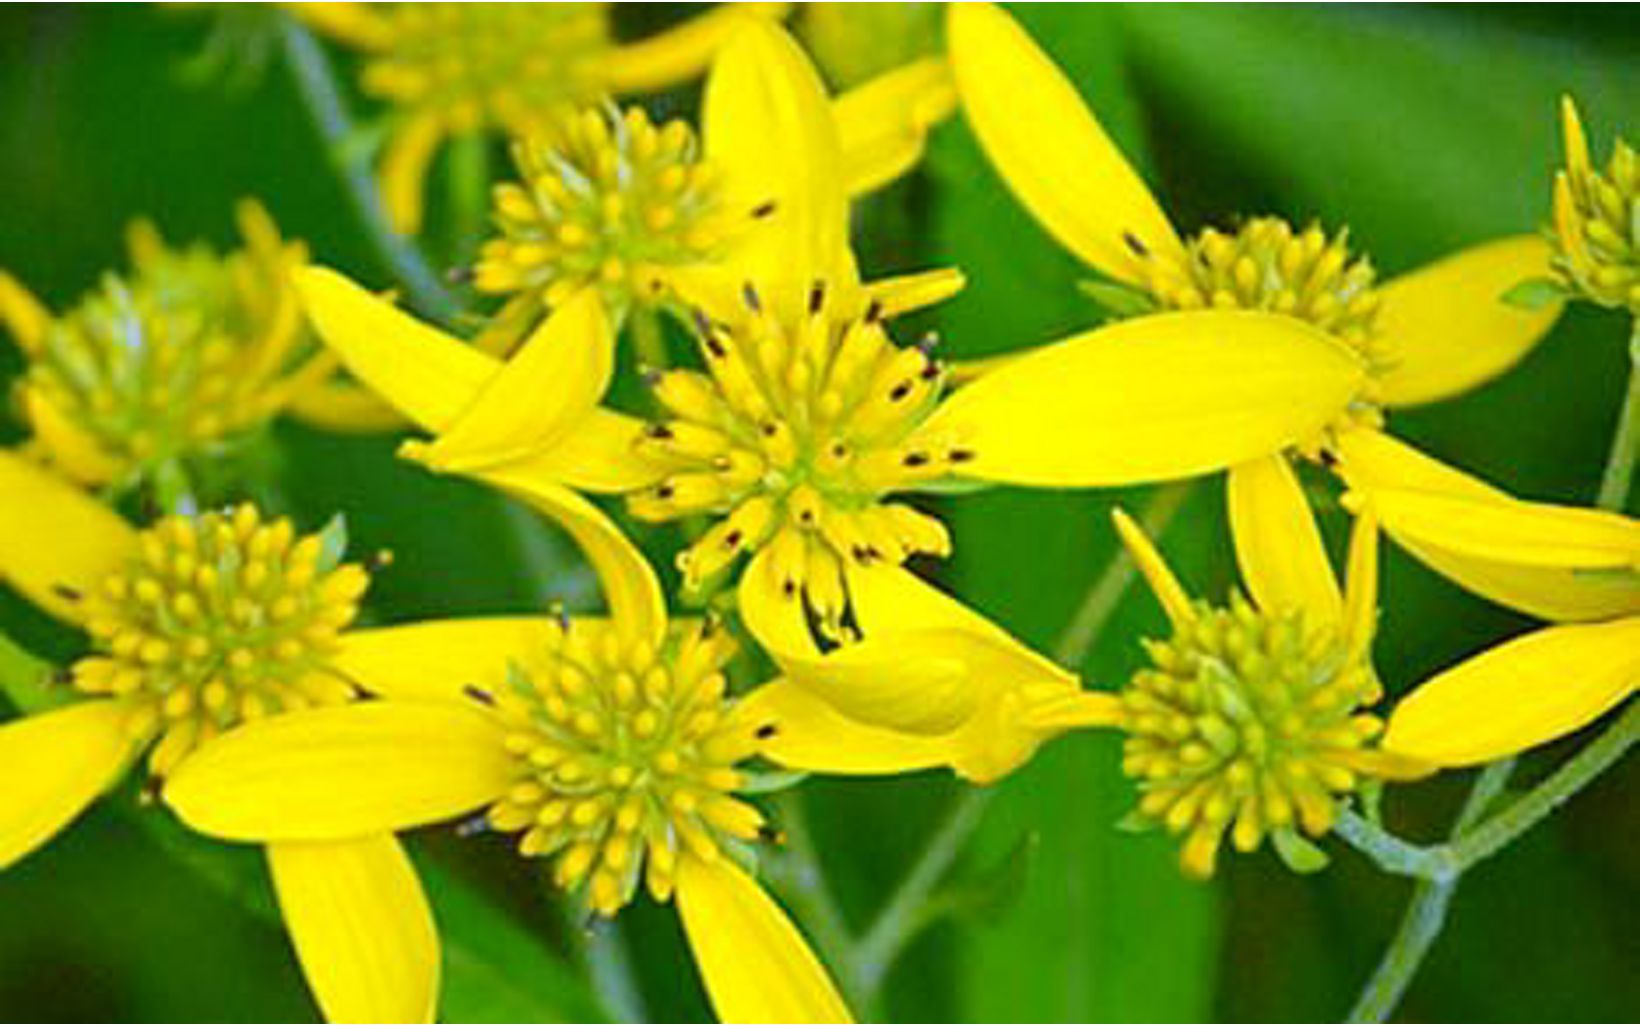 A yellow flower emerges from big green stems.